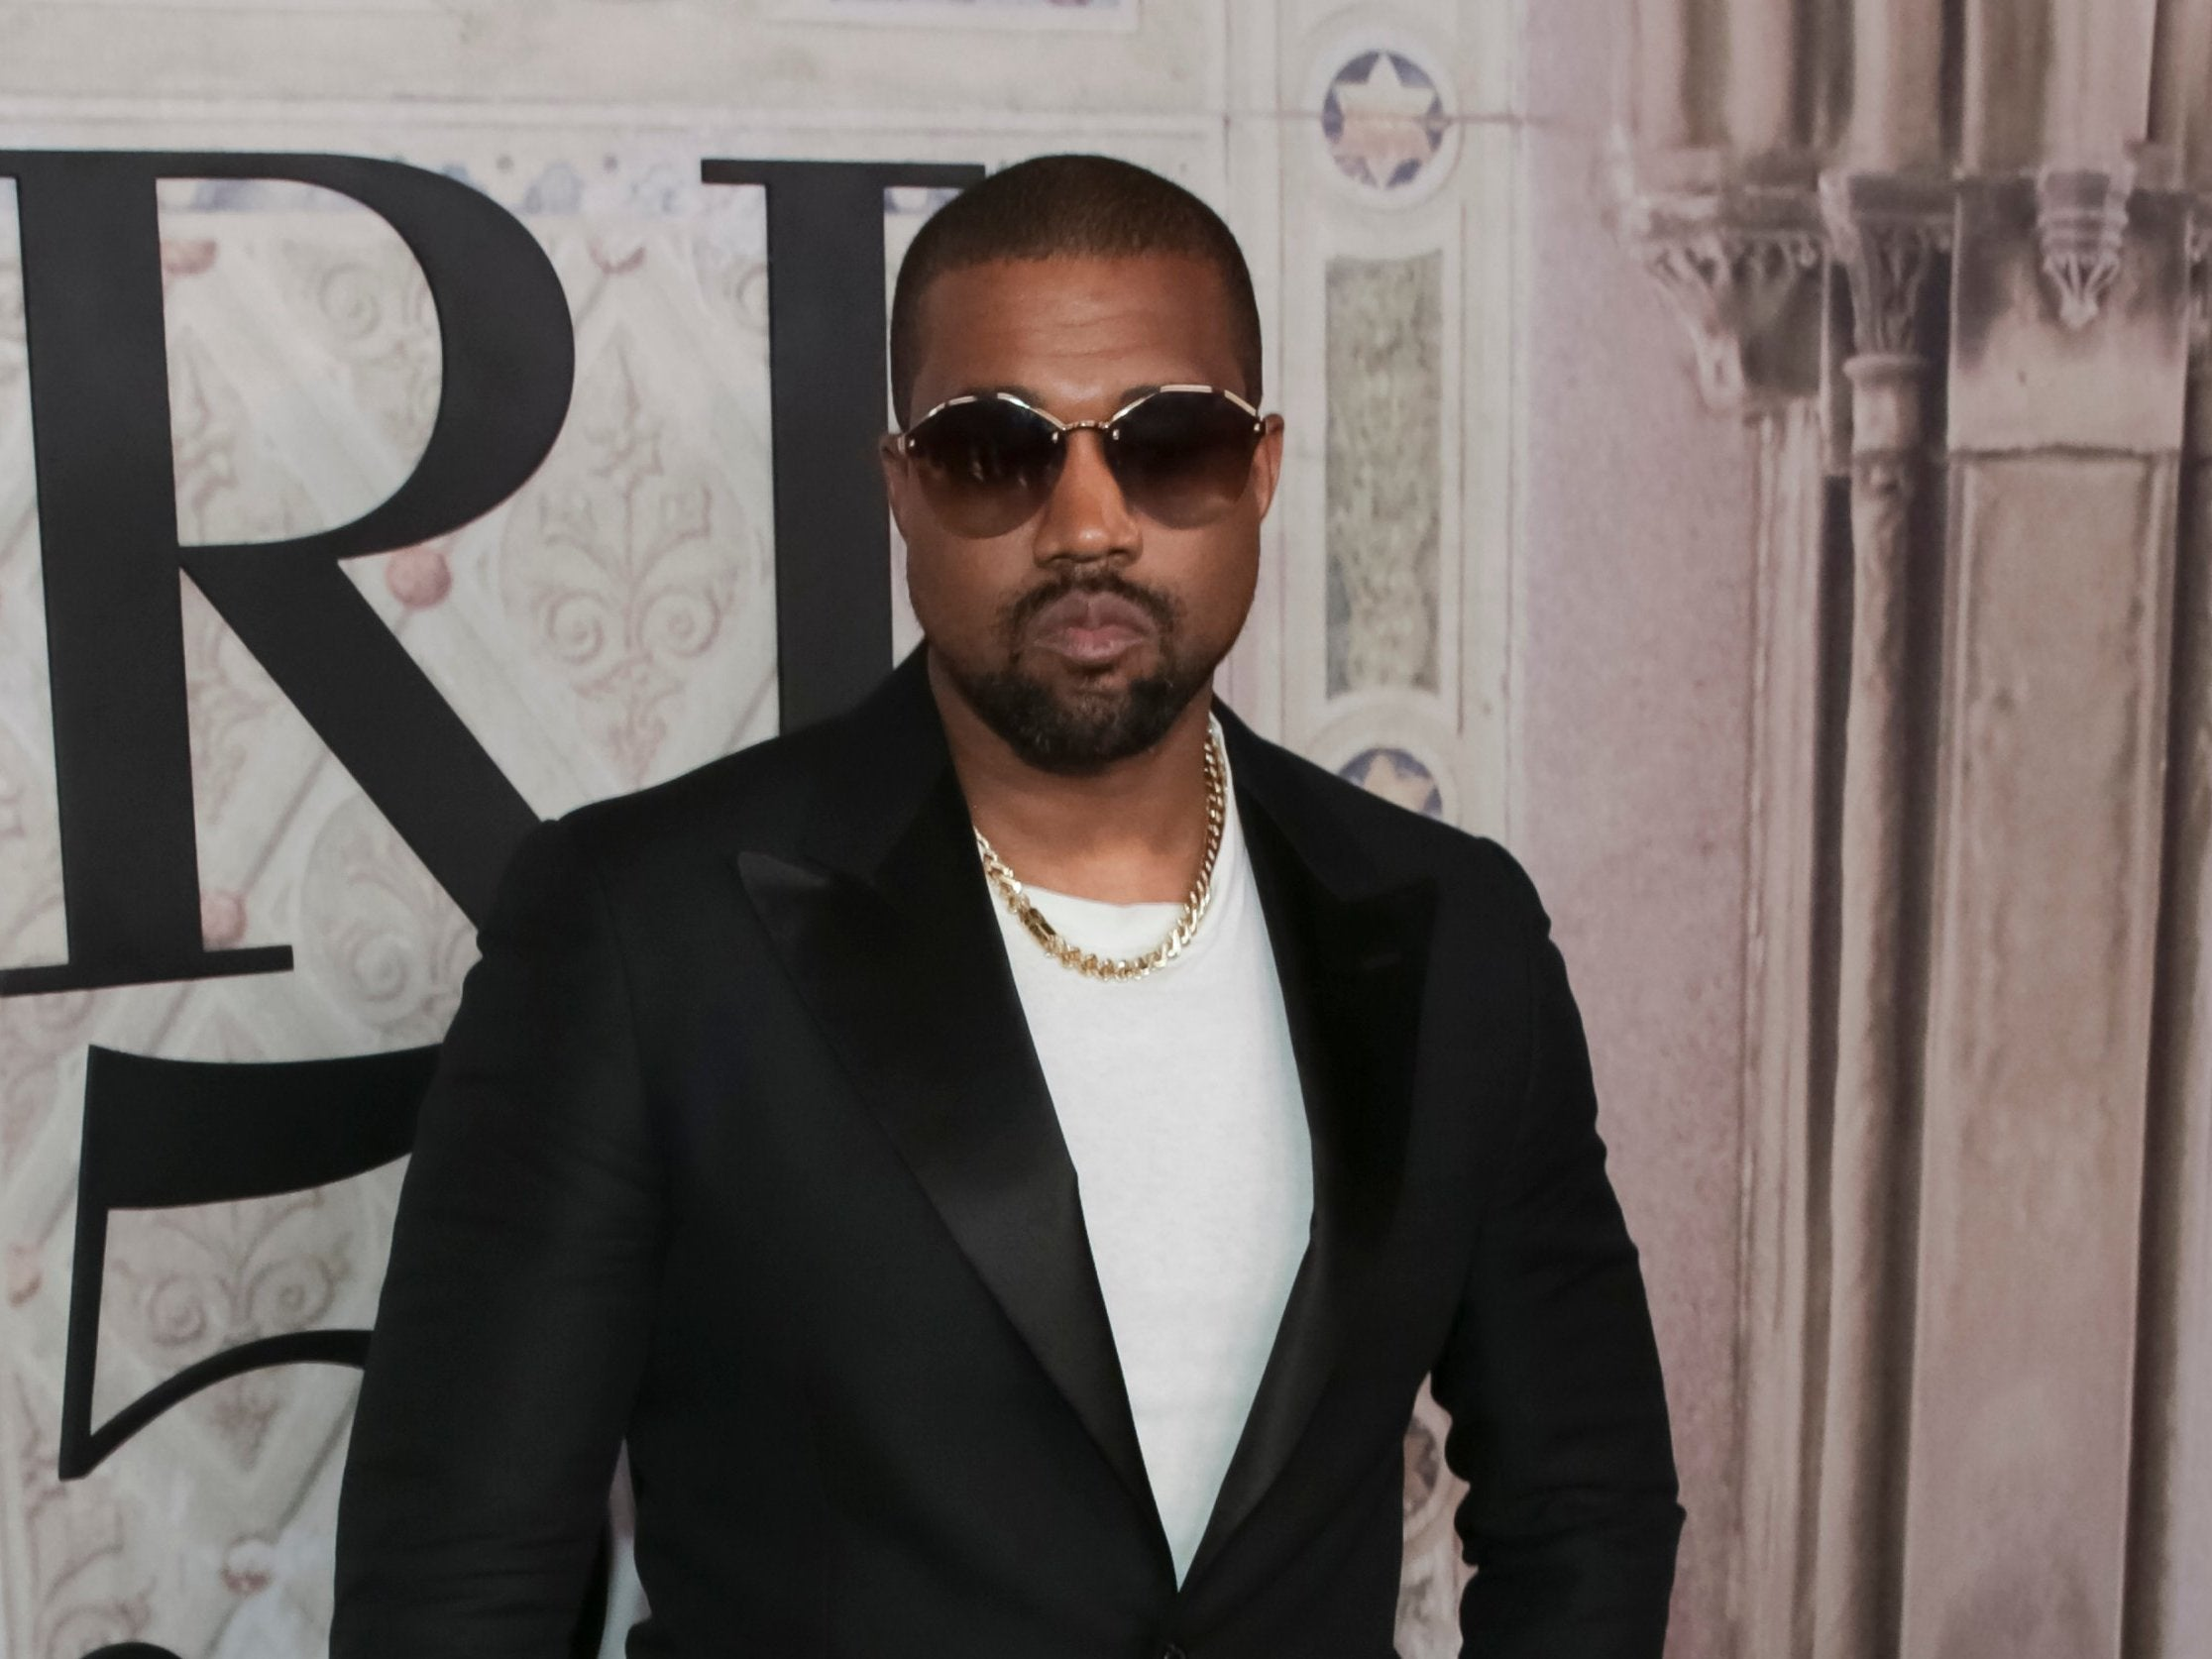 Kanye West asked people working on Jesus is King not to have sex before marriage